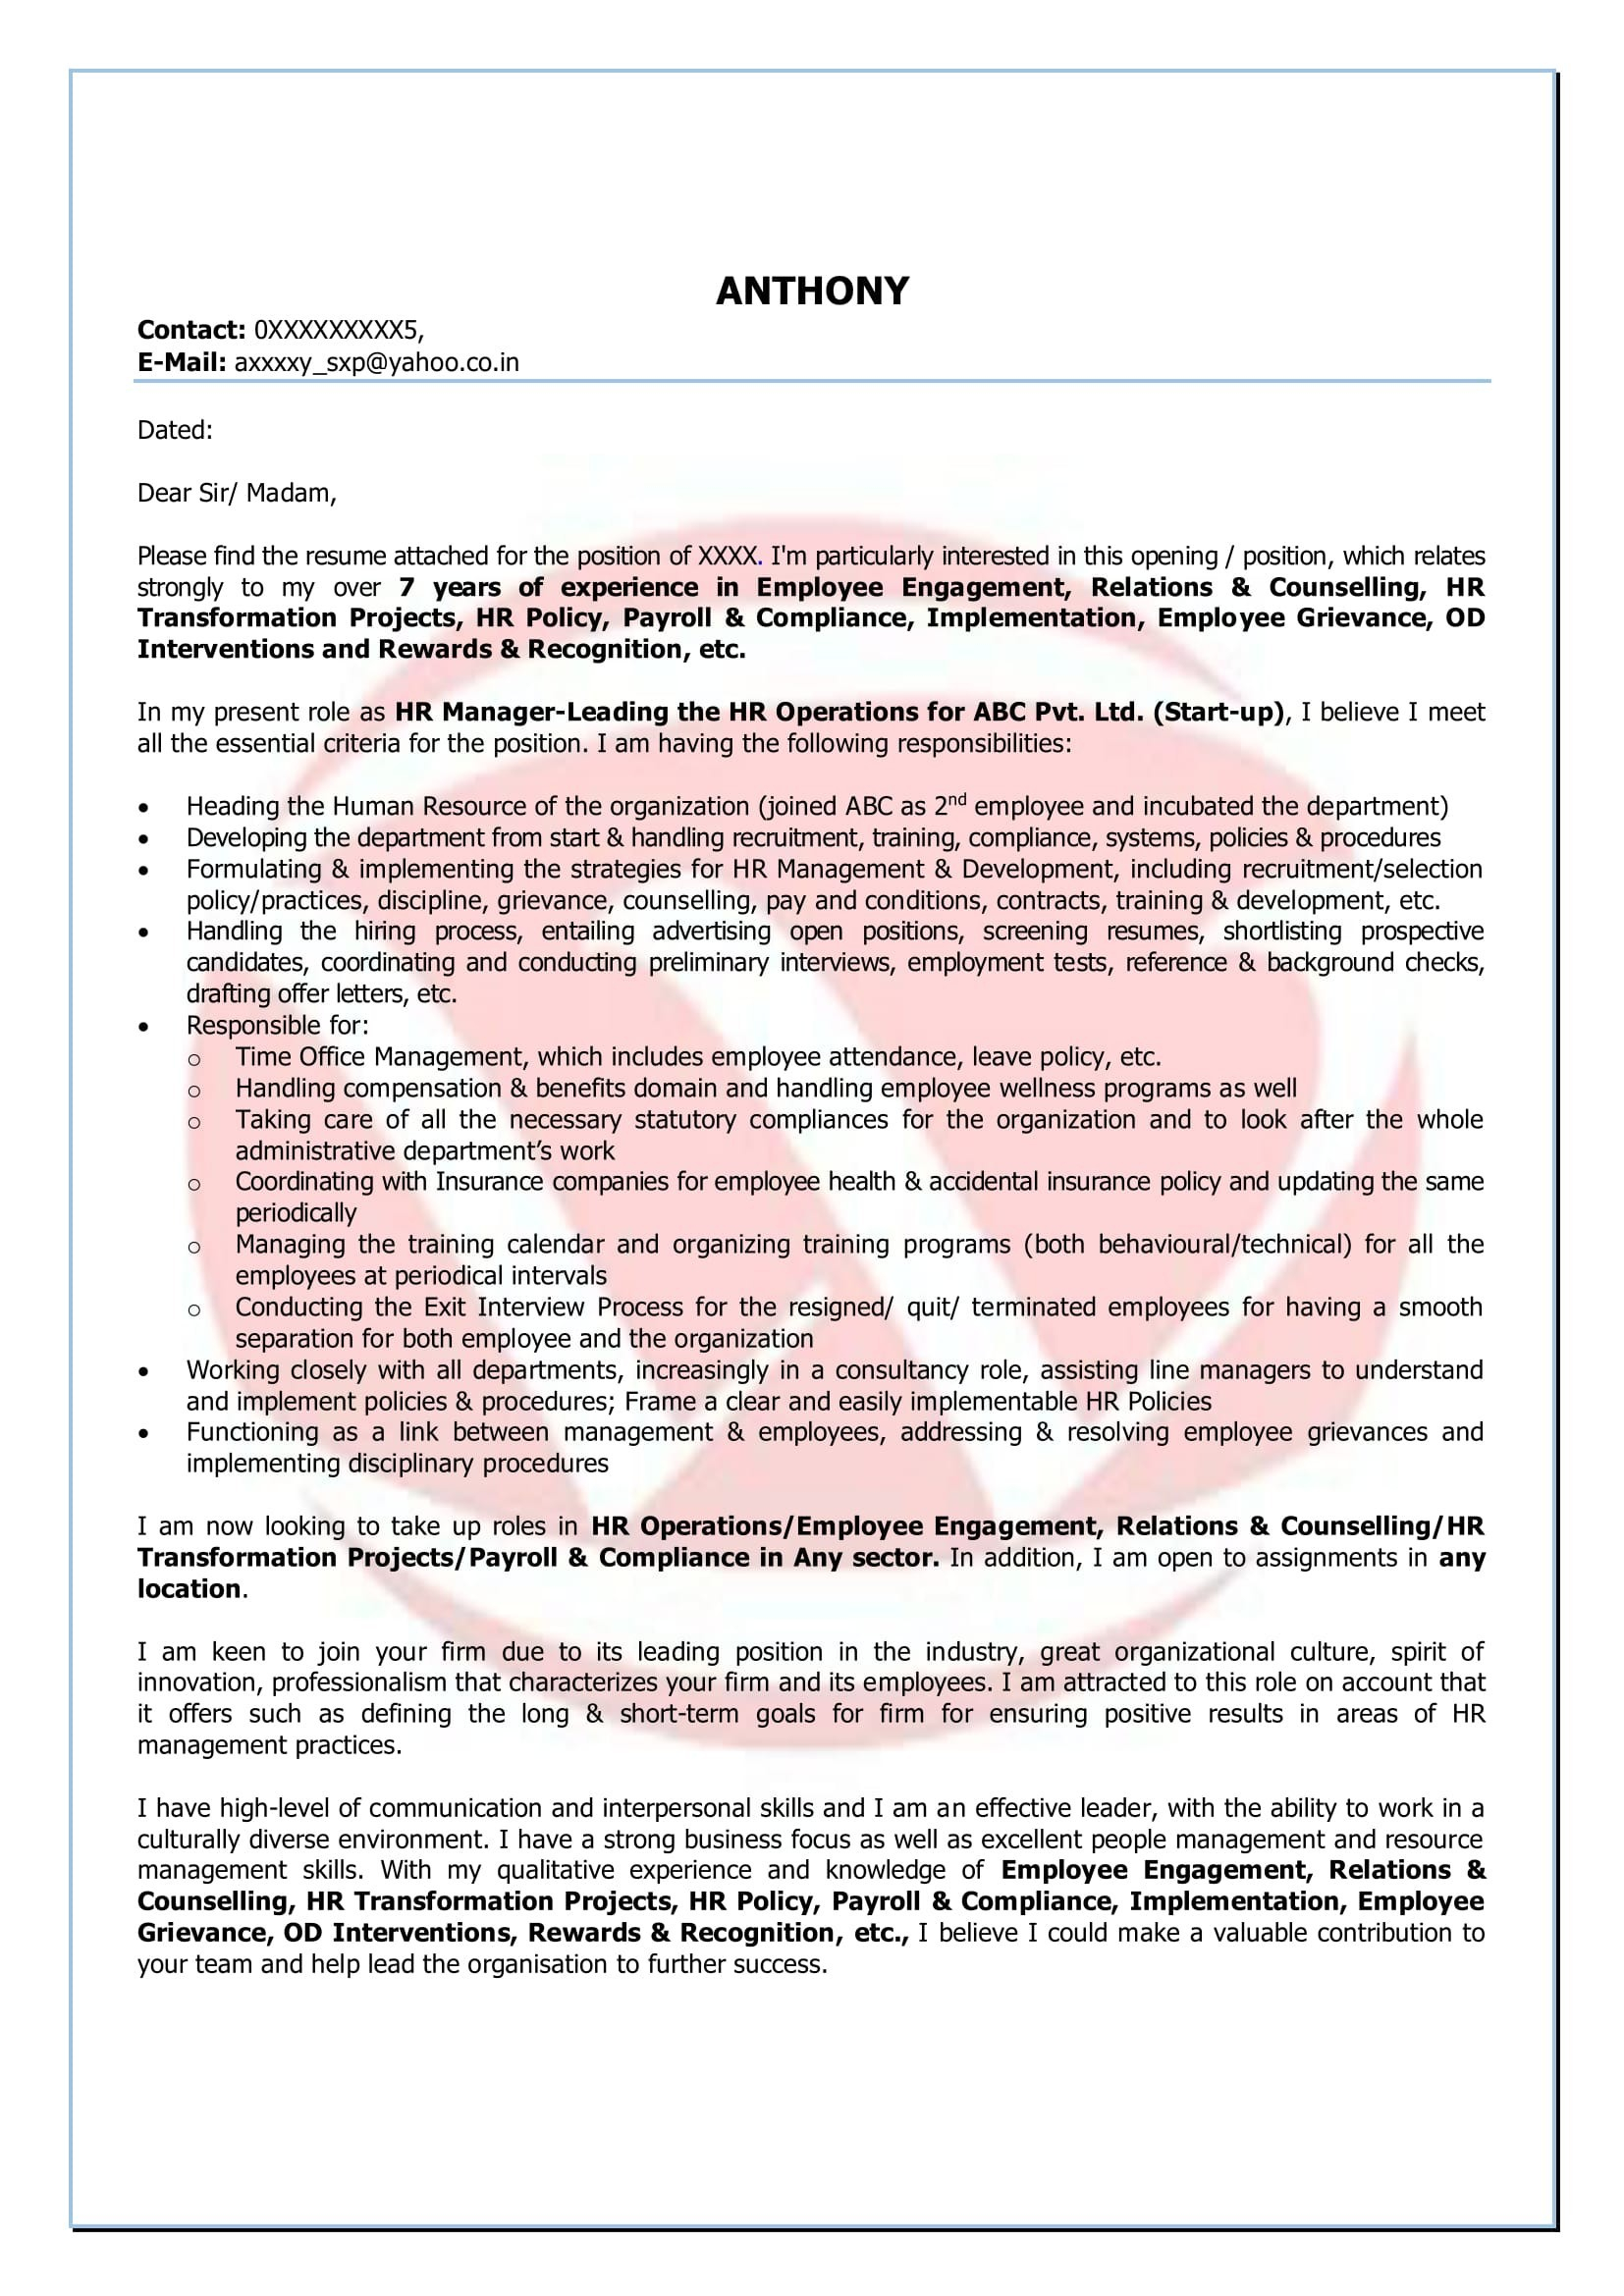 reach compliance letter template example-Reach Certificate pliance Sample Fresh Temp Reference Reach Certificate pliance Sample Fresh Template Experience Certificate Template Choice 4-t